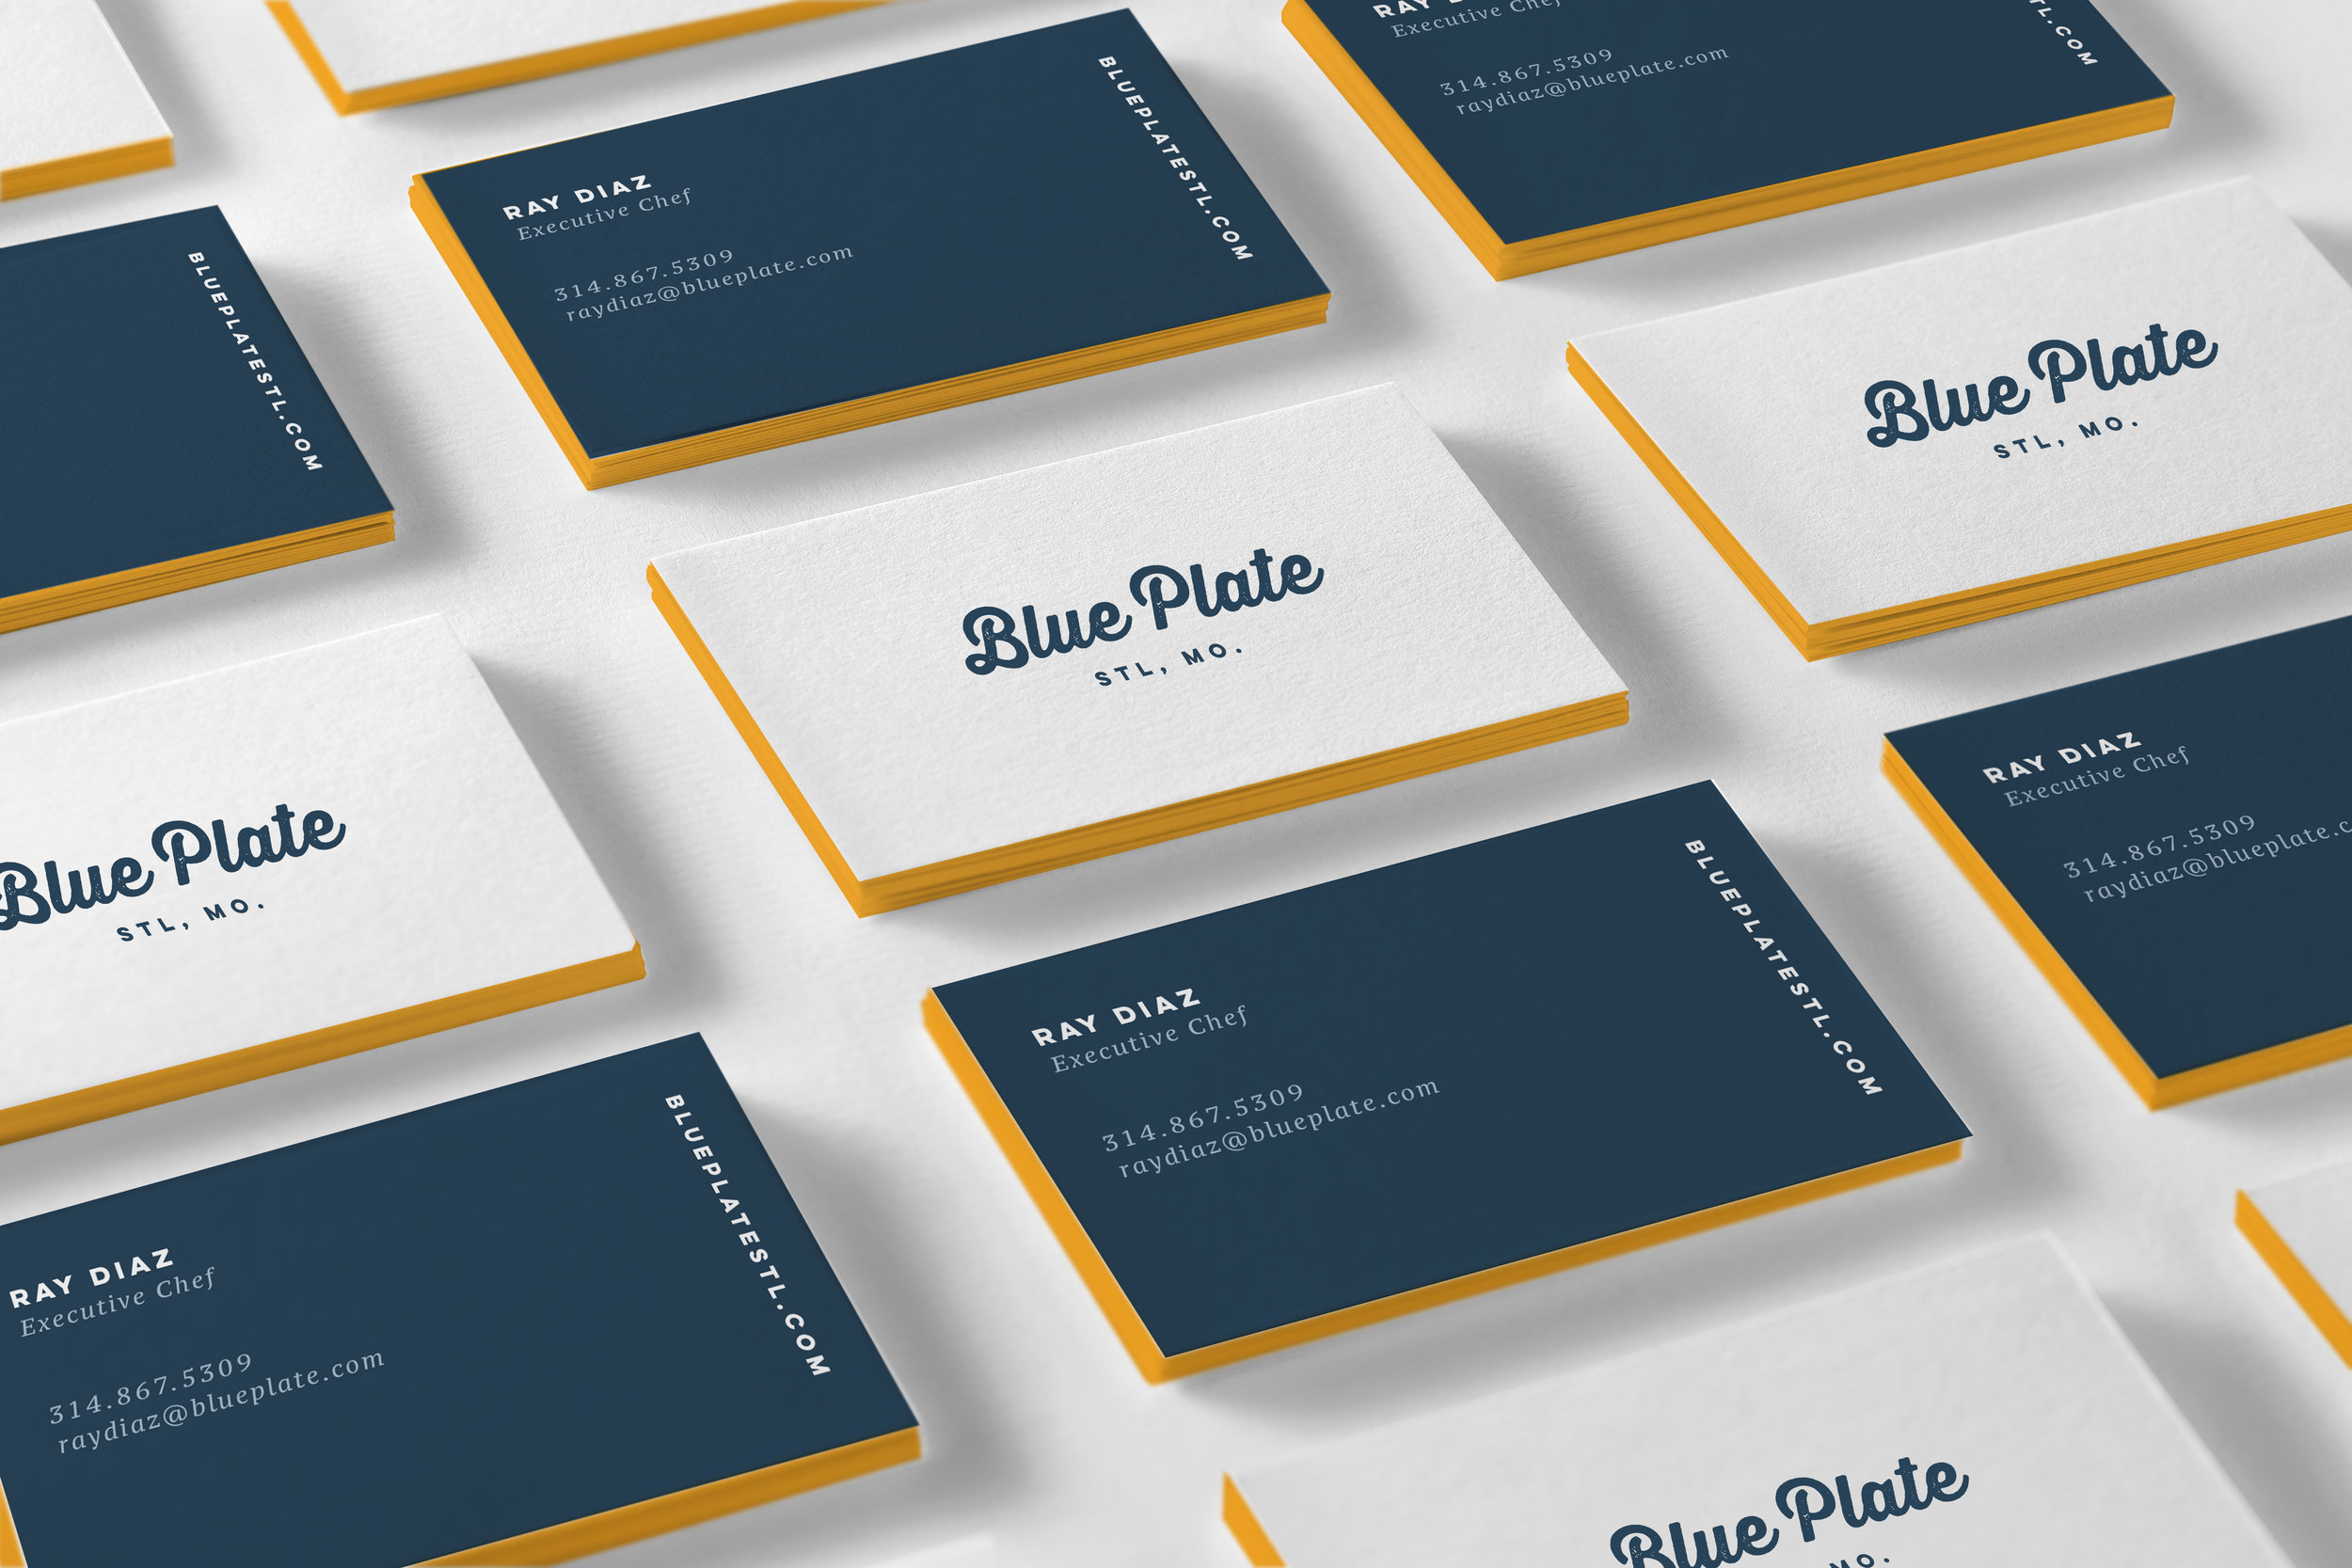 blueplate-business-cards.jpg